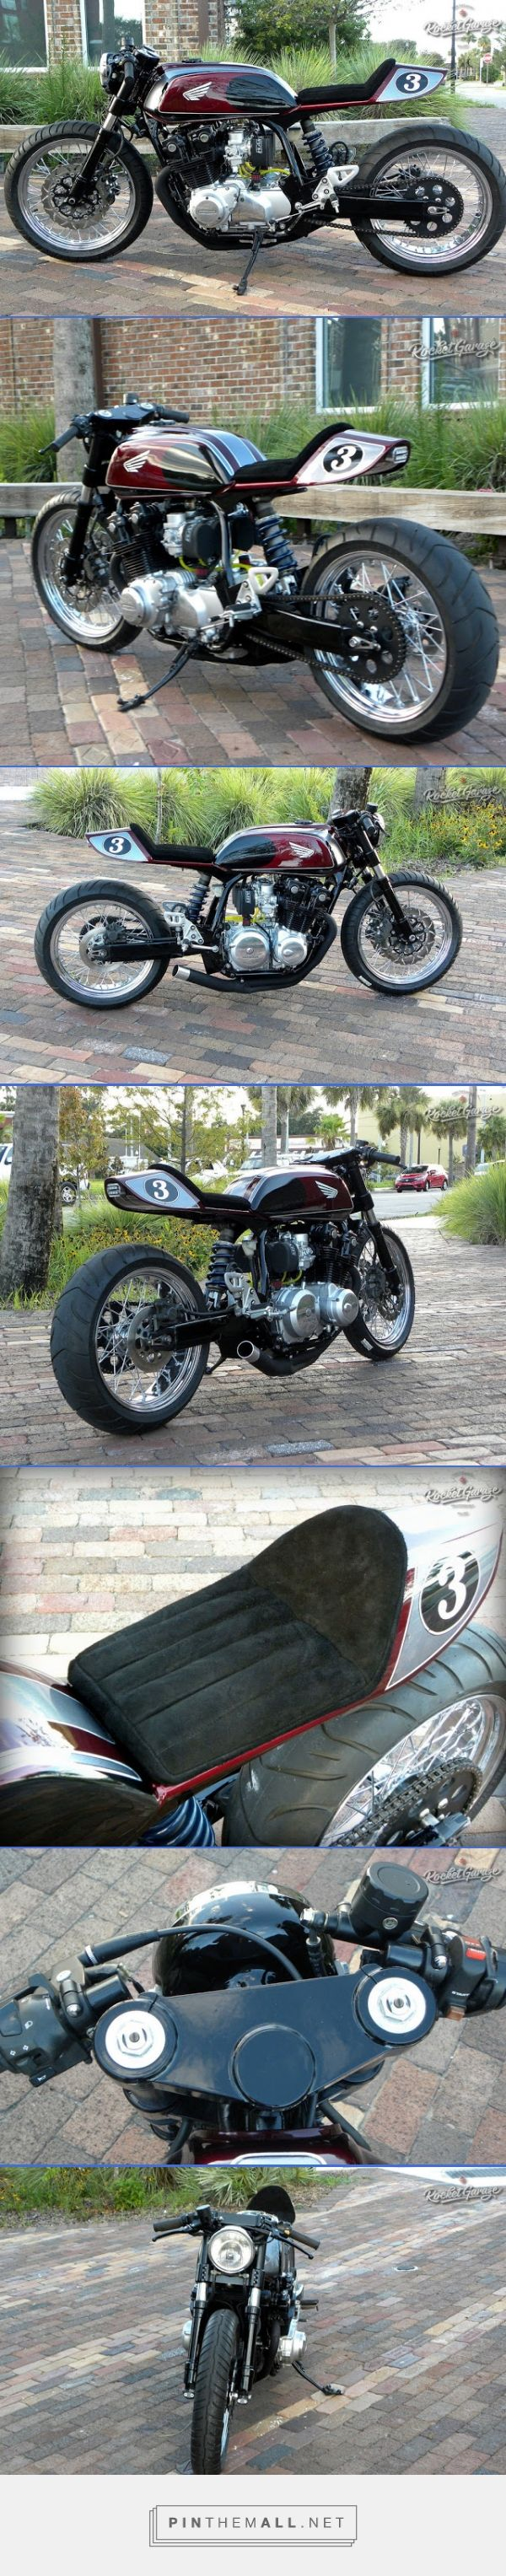 Candy Diablo Red - RocketGarage - Cafe Racer Magazine - created via https://pinthemall.net